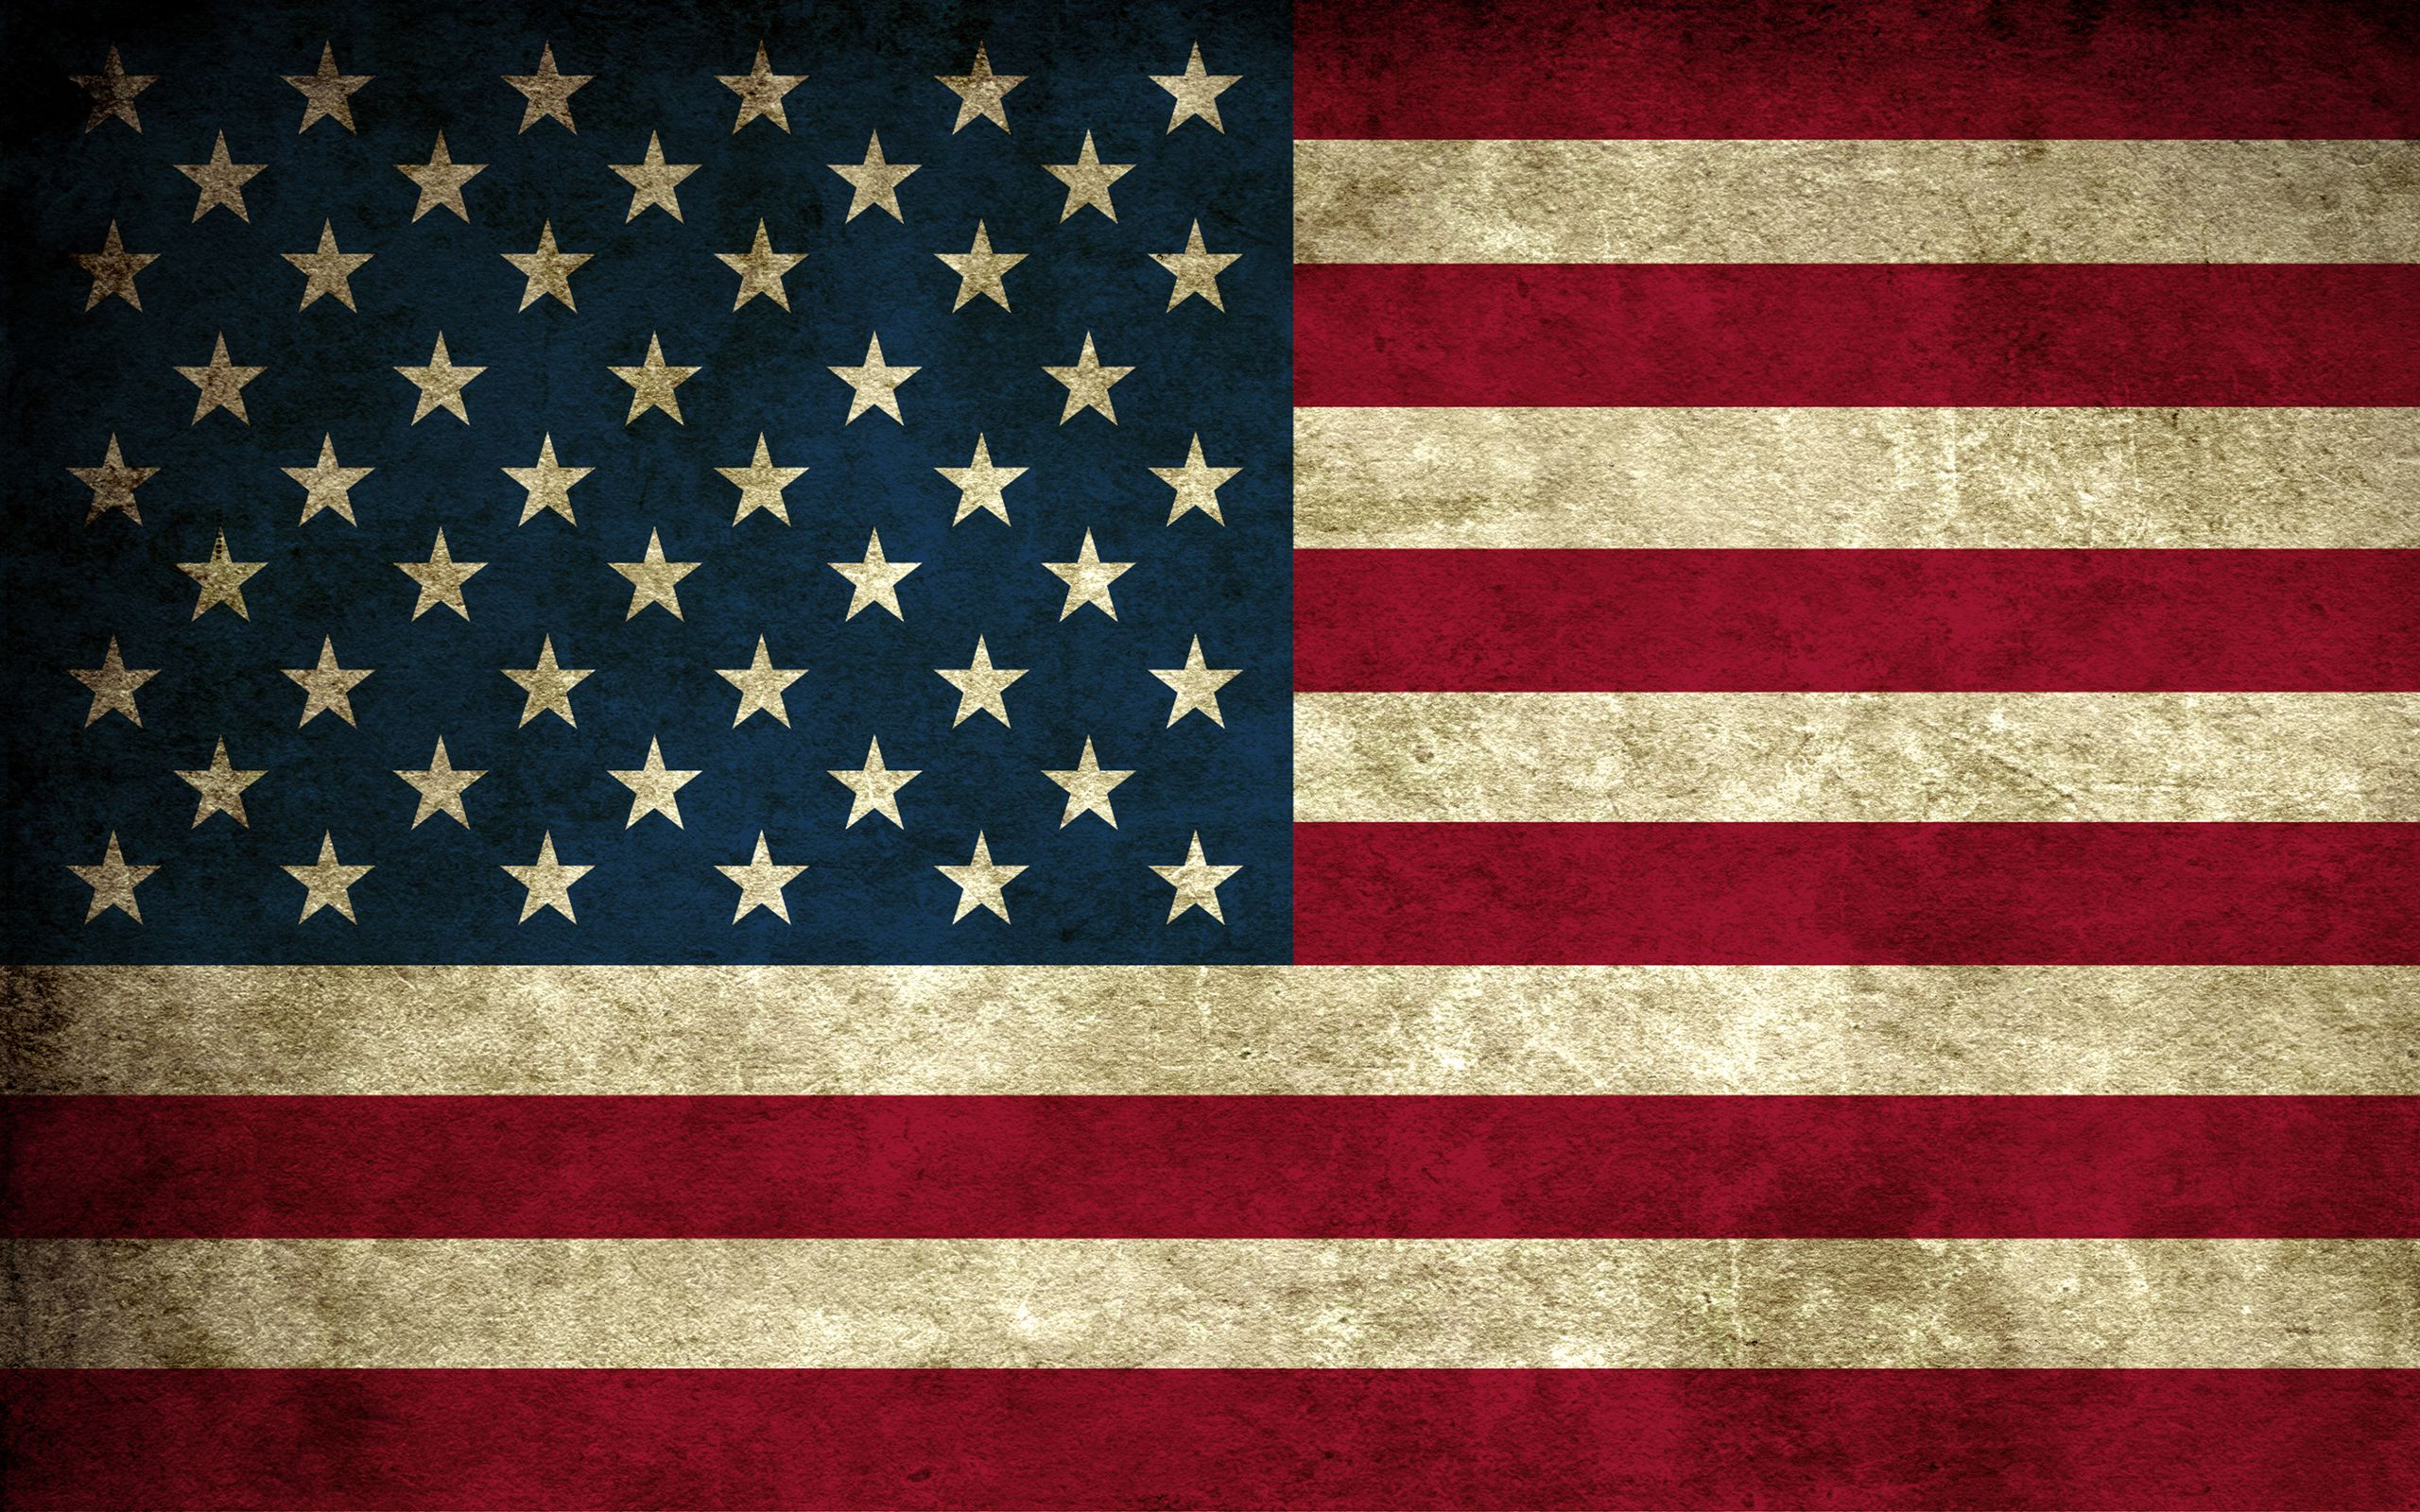 948f235b607 American flag backgrounds download backgrounds flag usa flags jpg 2560x1600 Old  american flag background